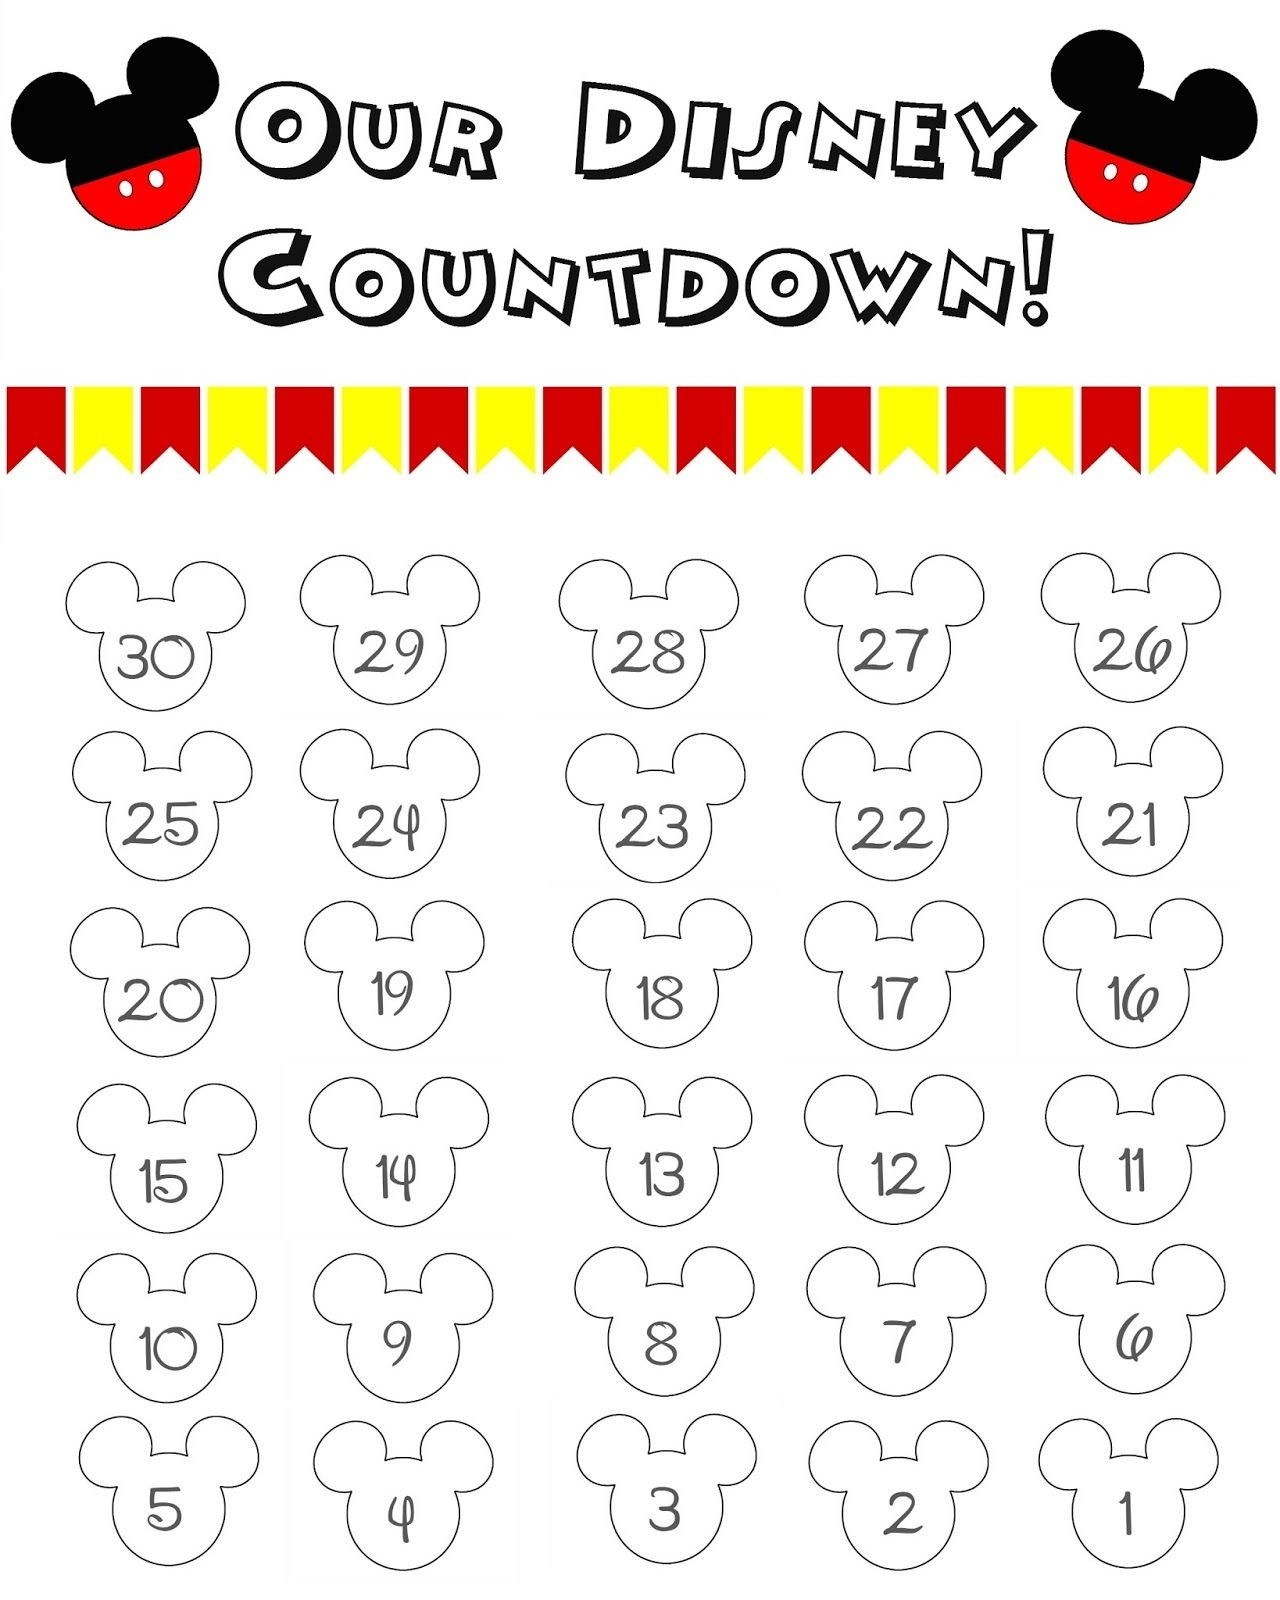 Disney World Countdown Calendar - Free Printable | The Momma Diaries  Free Printable Vacation Countdown Calendar